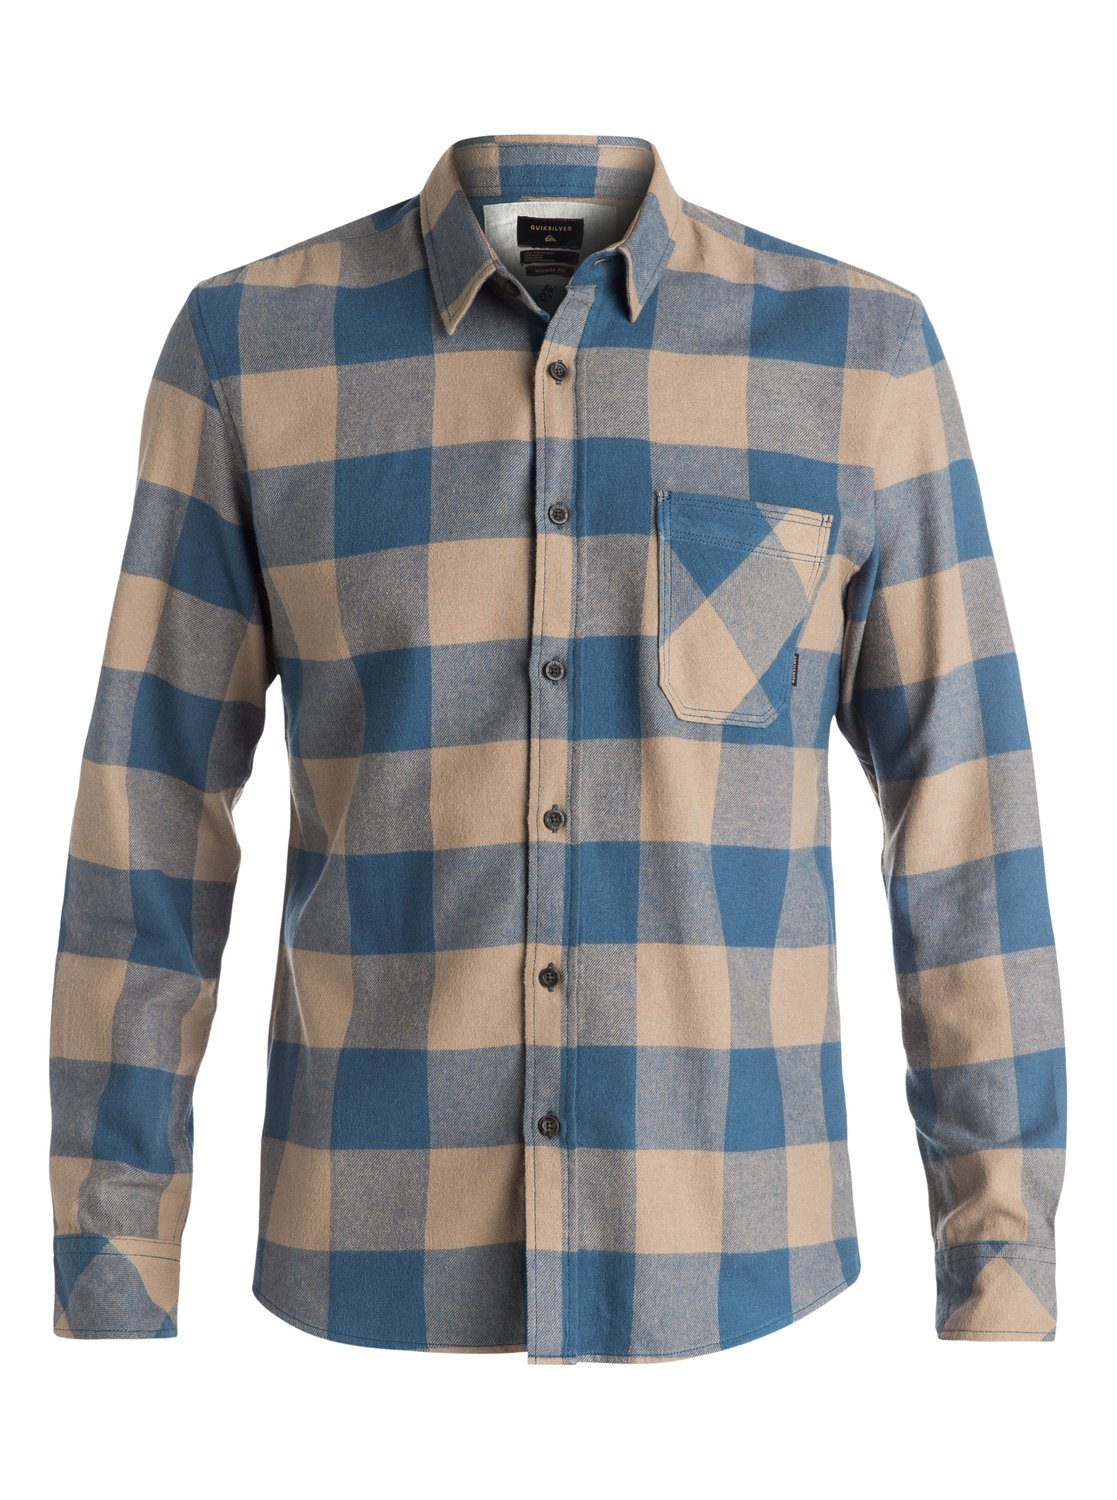 Motherfly Flannel - Long Sleeve Shirt